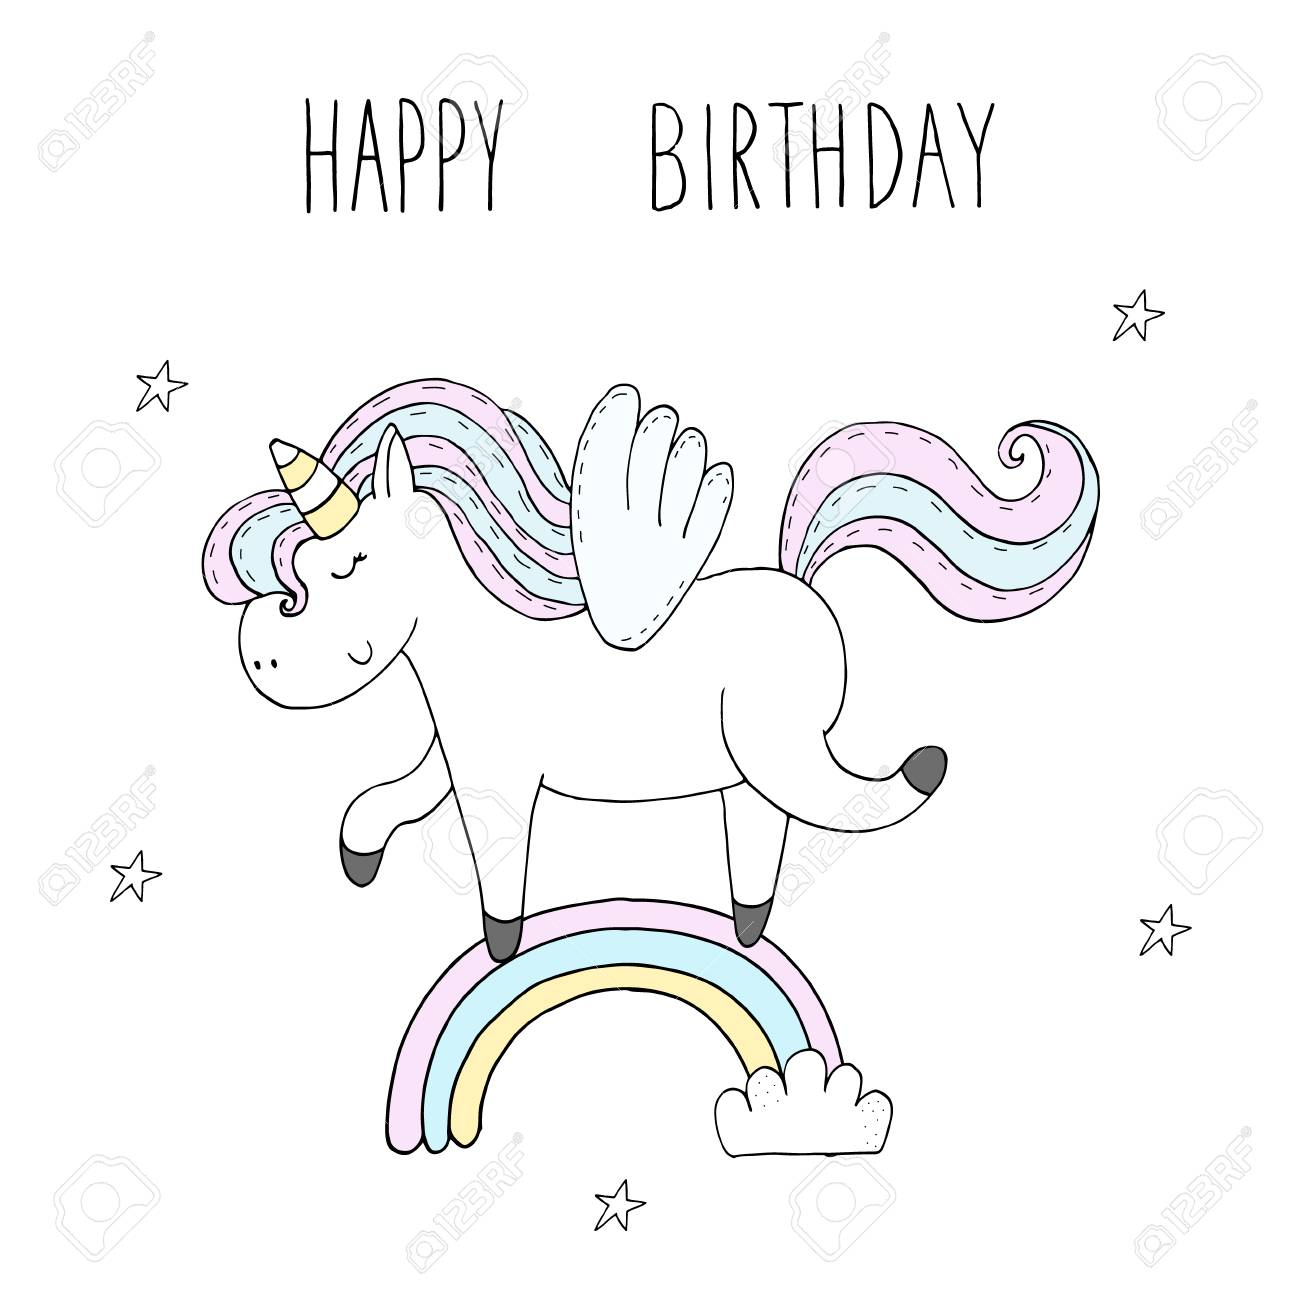 Cute Unicorn Print For Kids Happy Birthday Card Royalty Free